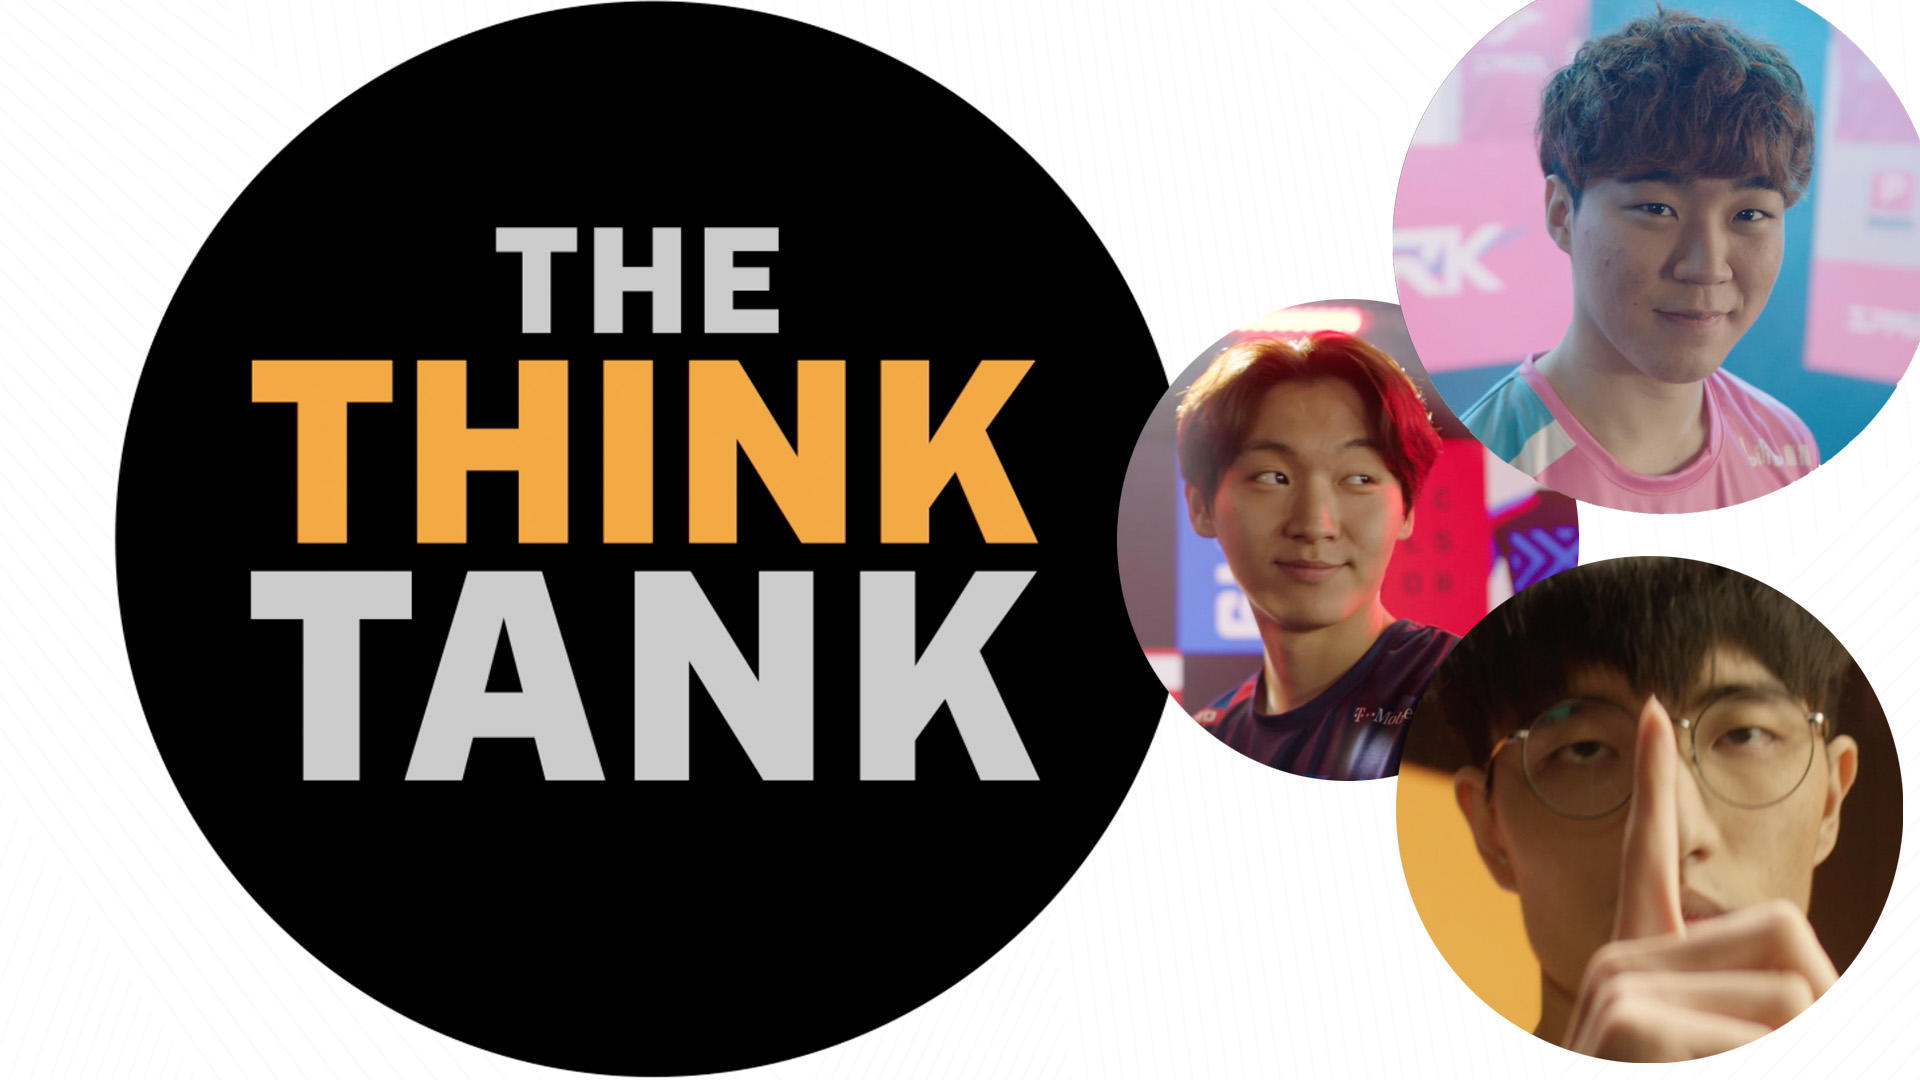 The Think Tank with Fissure, Mano, and Ria